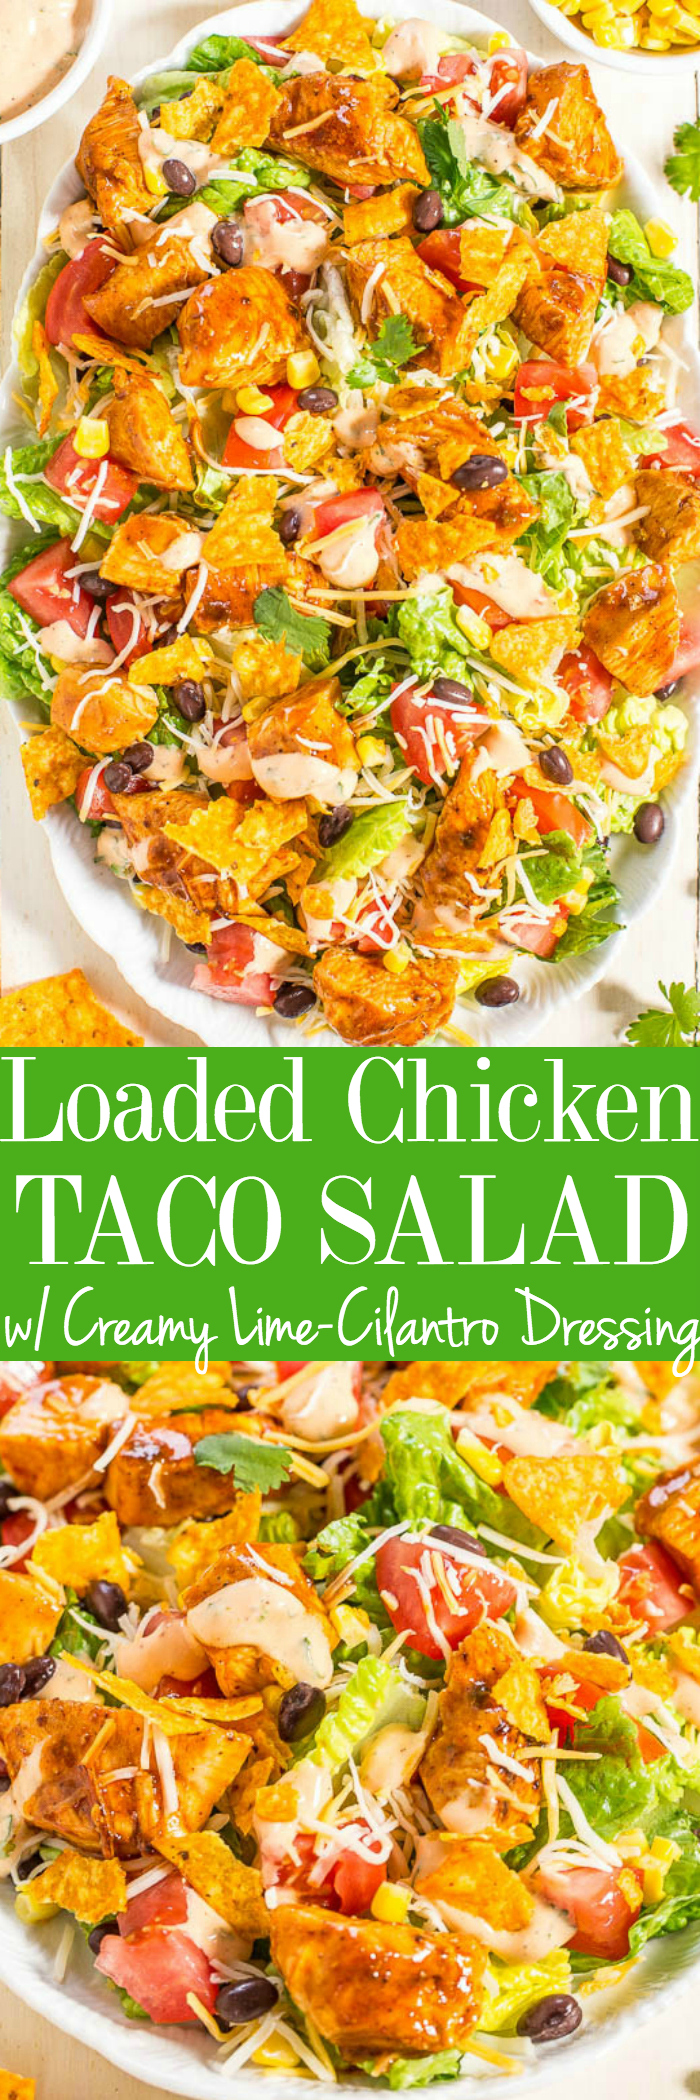 Loaded Chicken Taco Salad with Creamy Lime-Cilantro Dressing - Fast, easy, fresh and healthy!! All your favorite taco flavors in one big kickin' salad that everyone will love!!